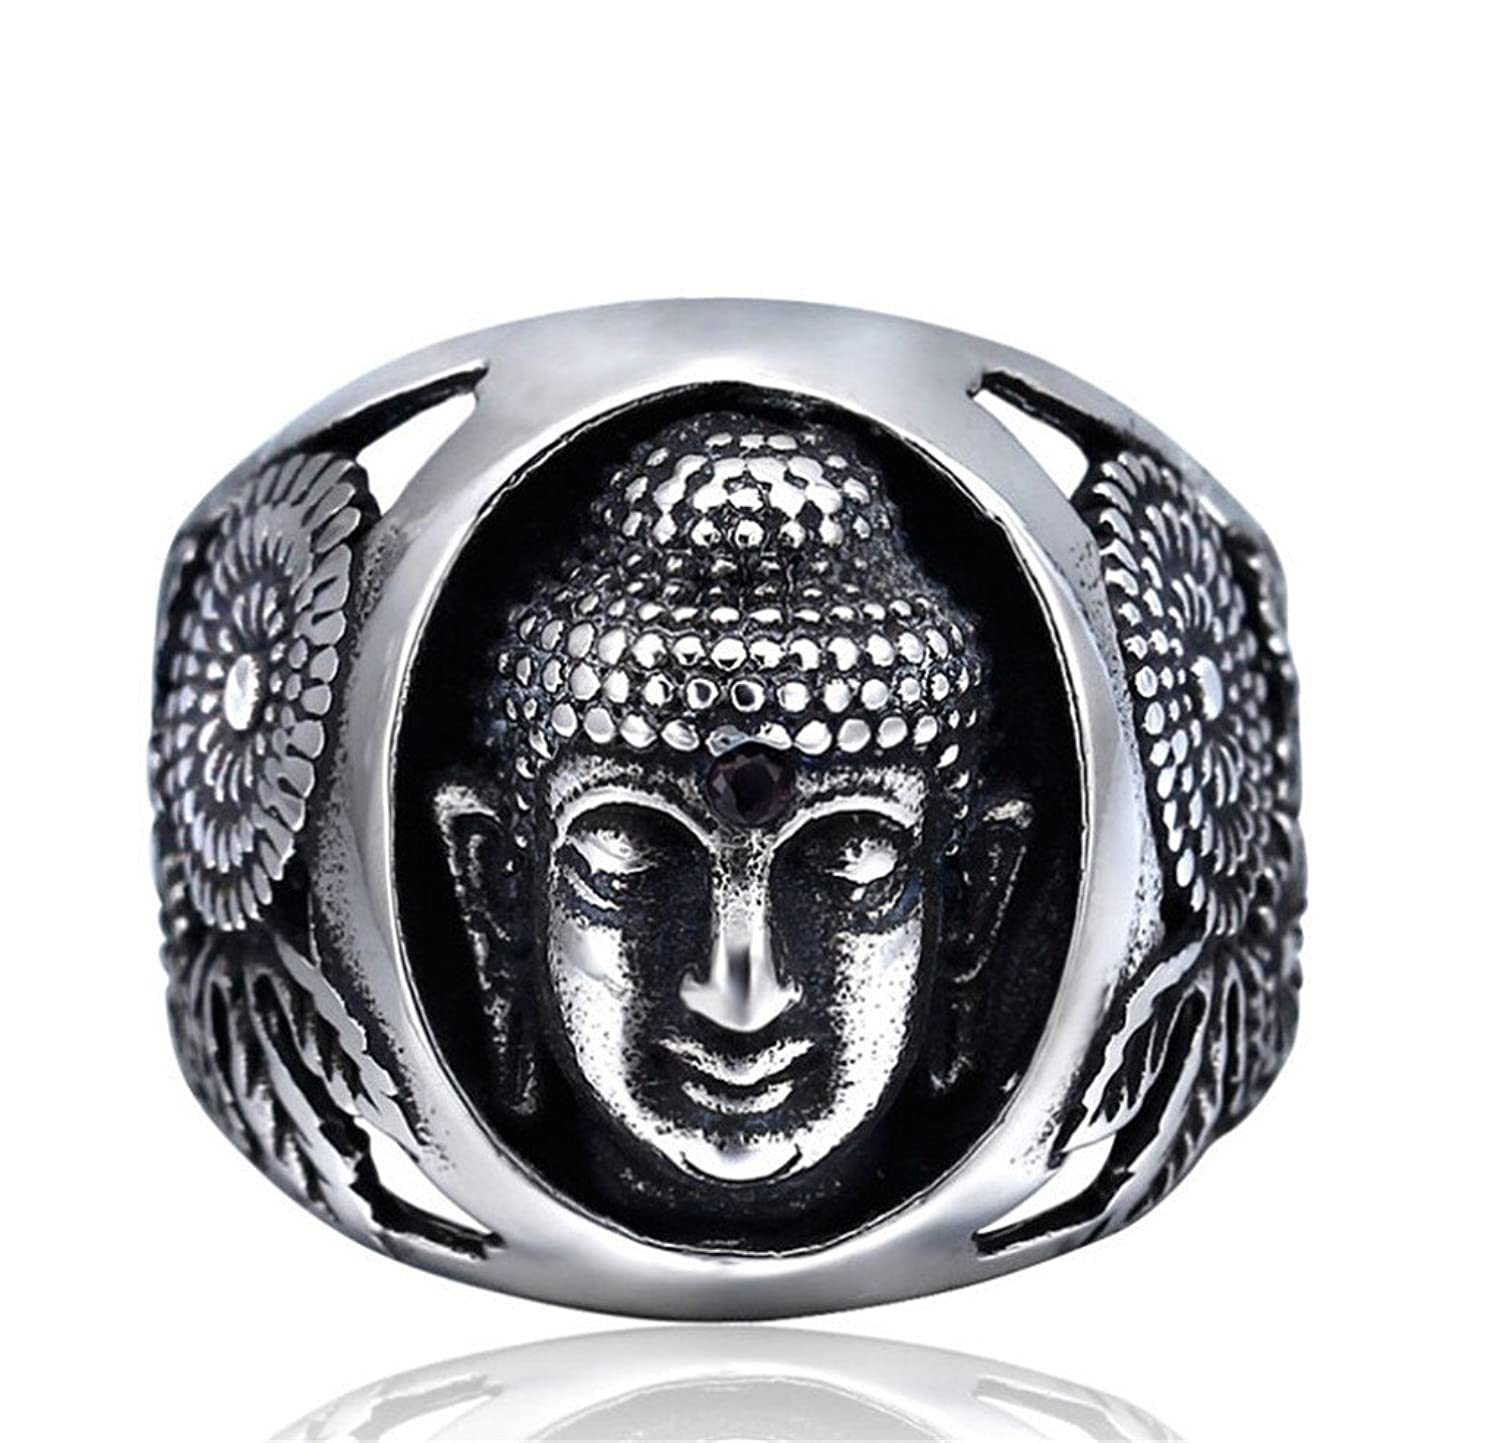 TIDOO Jewelry Punk Series Mens Vintage Gothic Biker Ring The Buddha Chrome Hearts Style Antique Black Silver 316L Stainless Steel Crystals Wide Cast Rock Finger Band Best Gift For Cowboy Knight Cavalier Chevalier Party Hallow